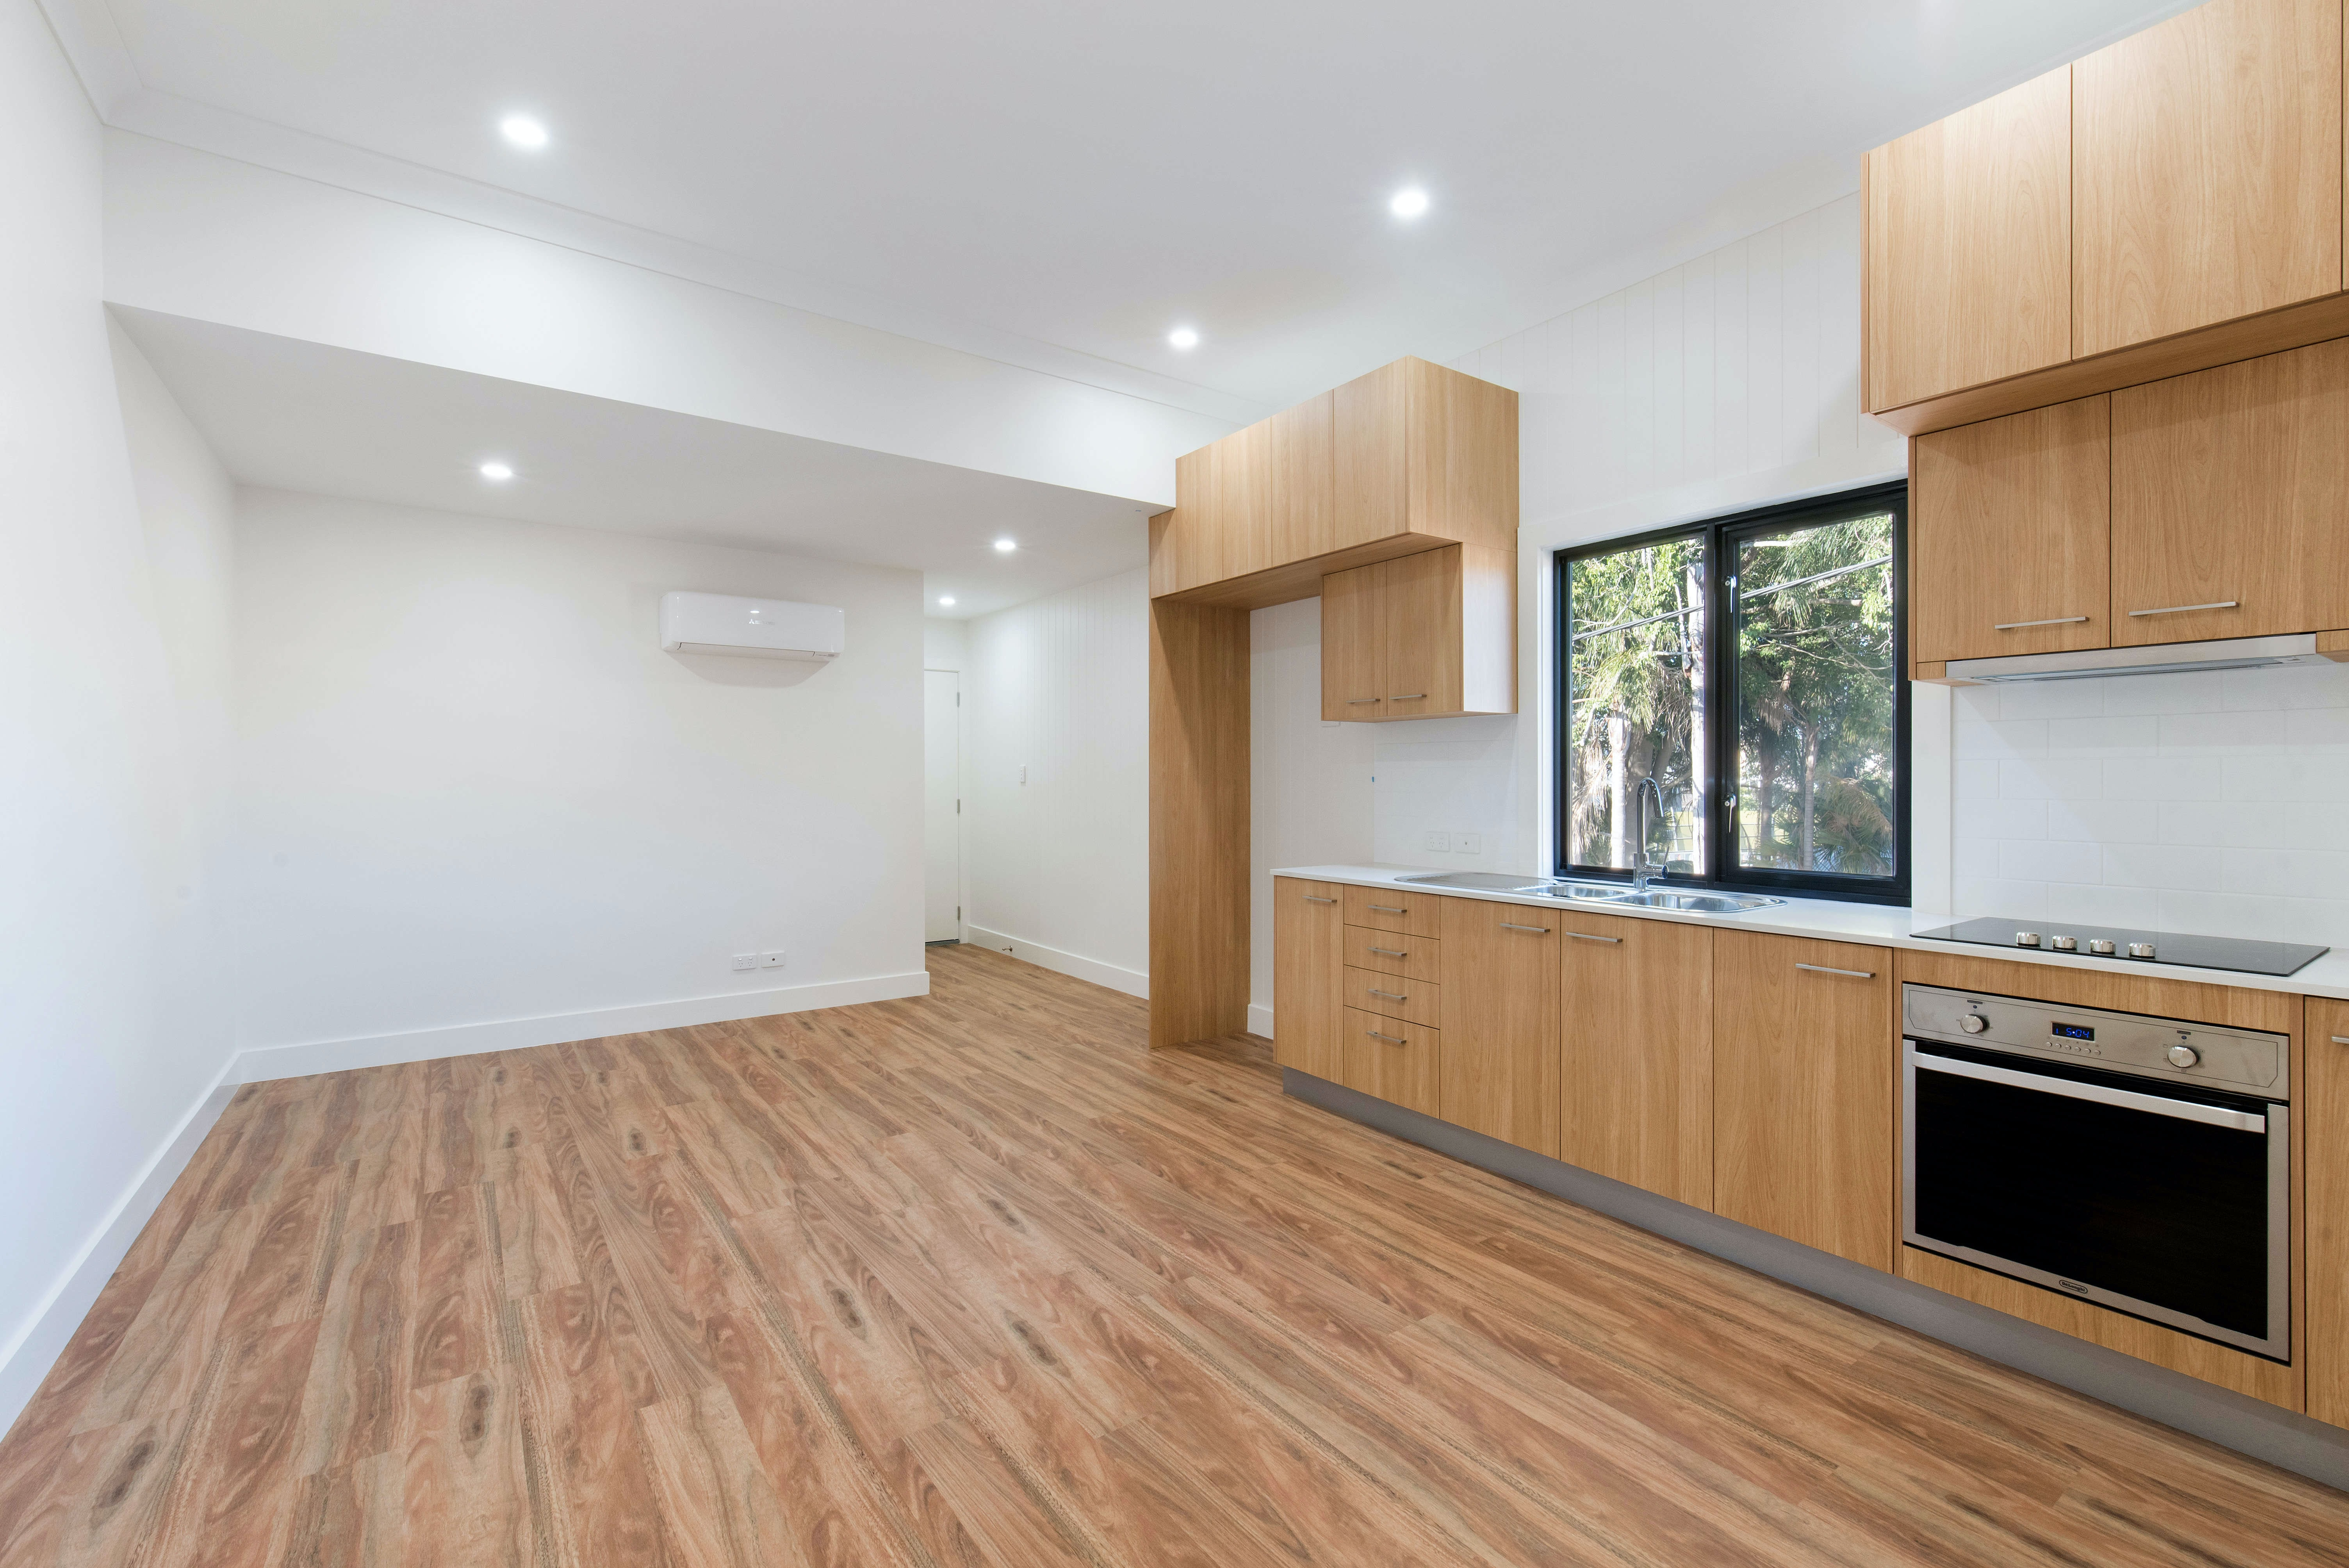 How Much Does Wood Flooring Installation Cost?